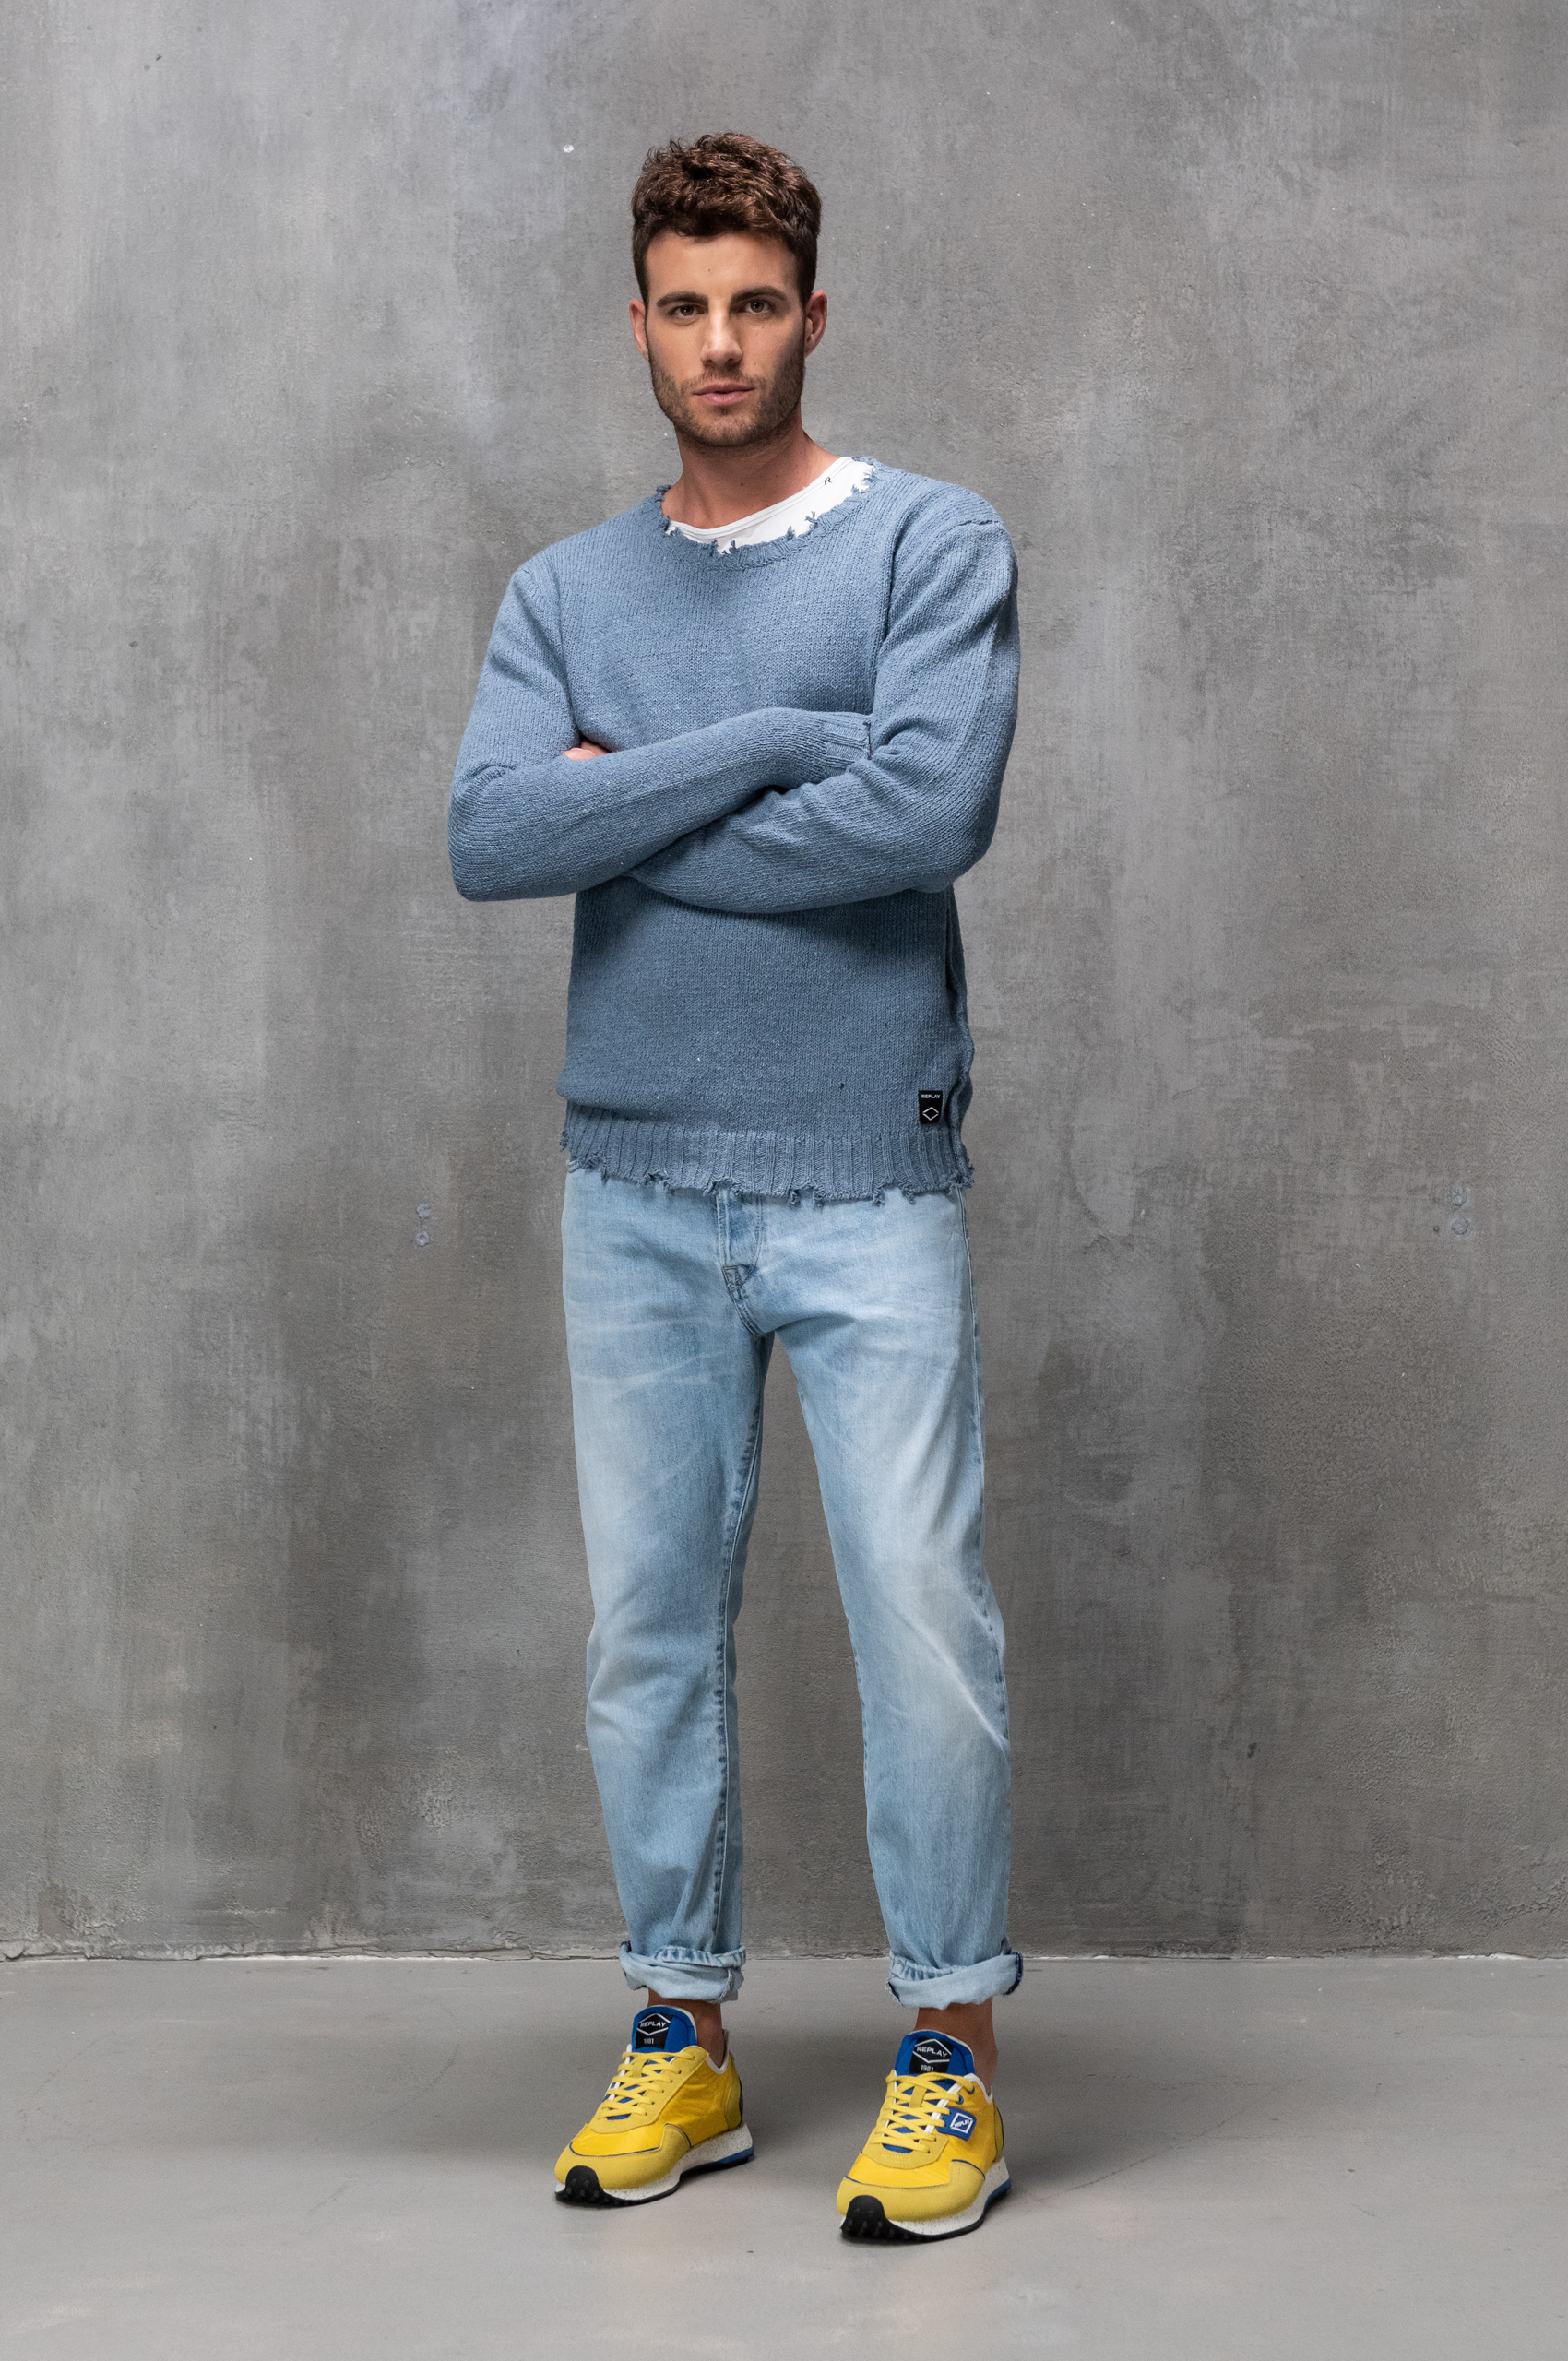 Tapered Pants denim fit guide men